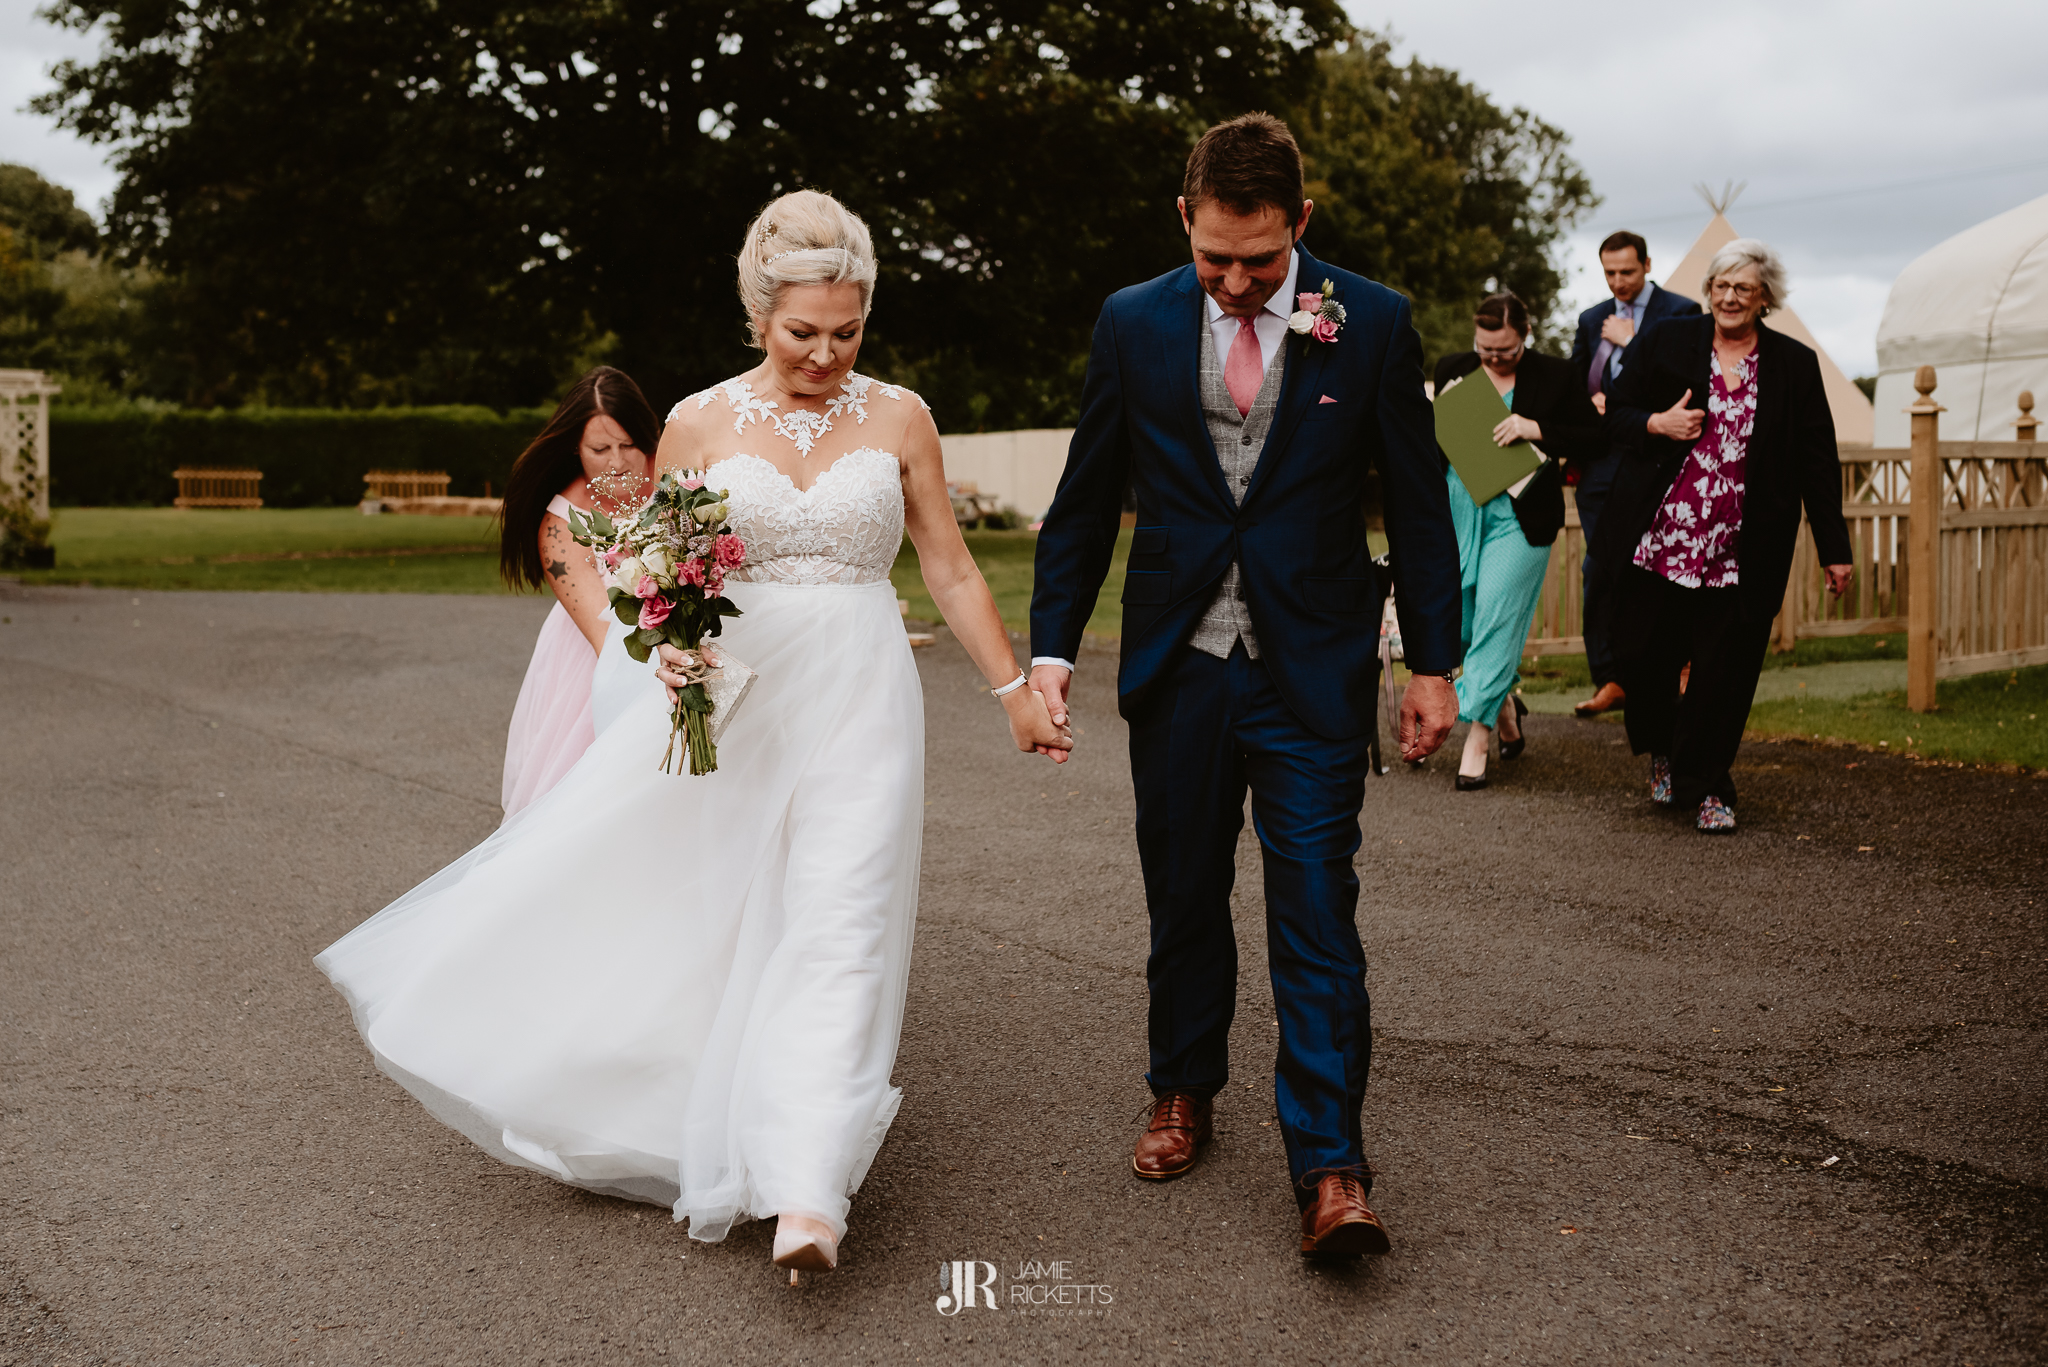 Wroxeter-Hotel-Wedding-Photography-In-Shropshire-By-Shropshire-Wedding-Photographer-Jamie-Ricketts-069.JPG